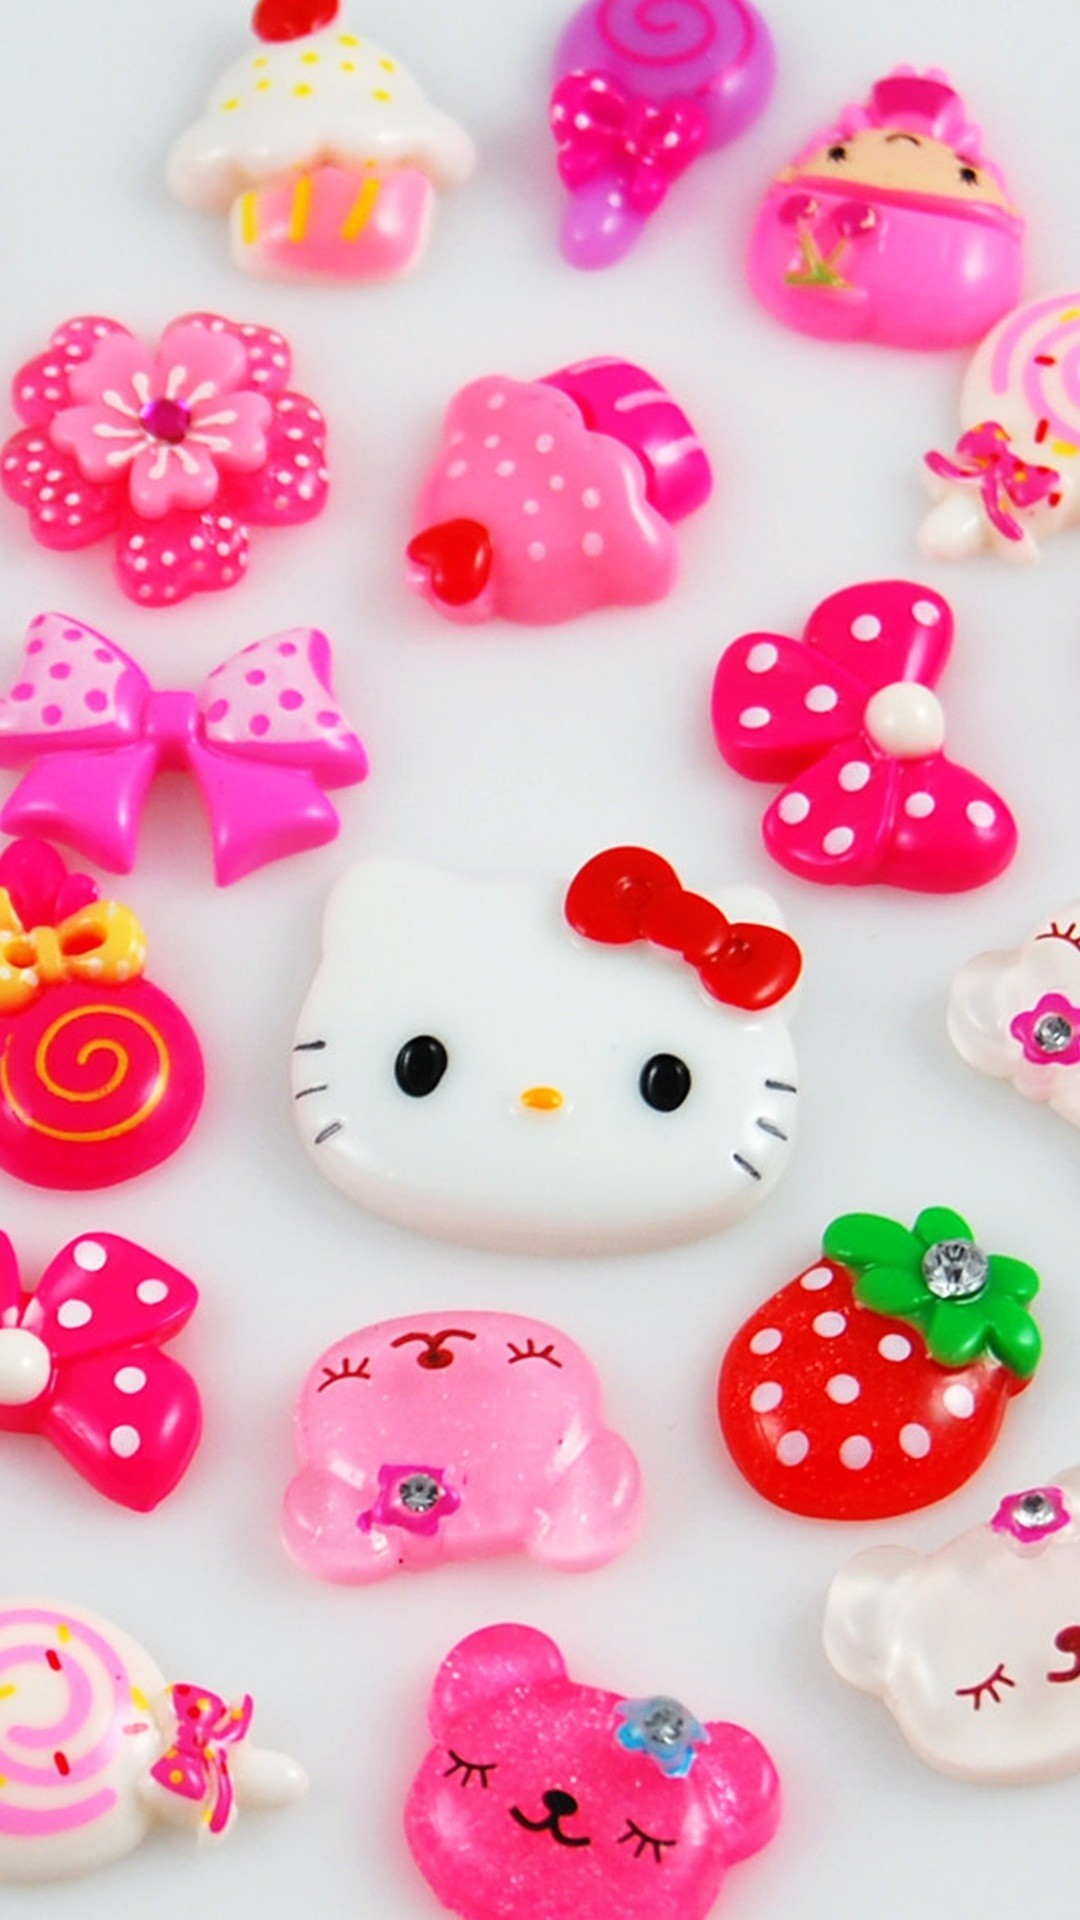 Hello Kitty Wallpapers 2018 51 Pictures